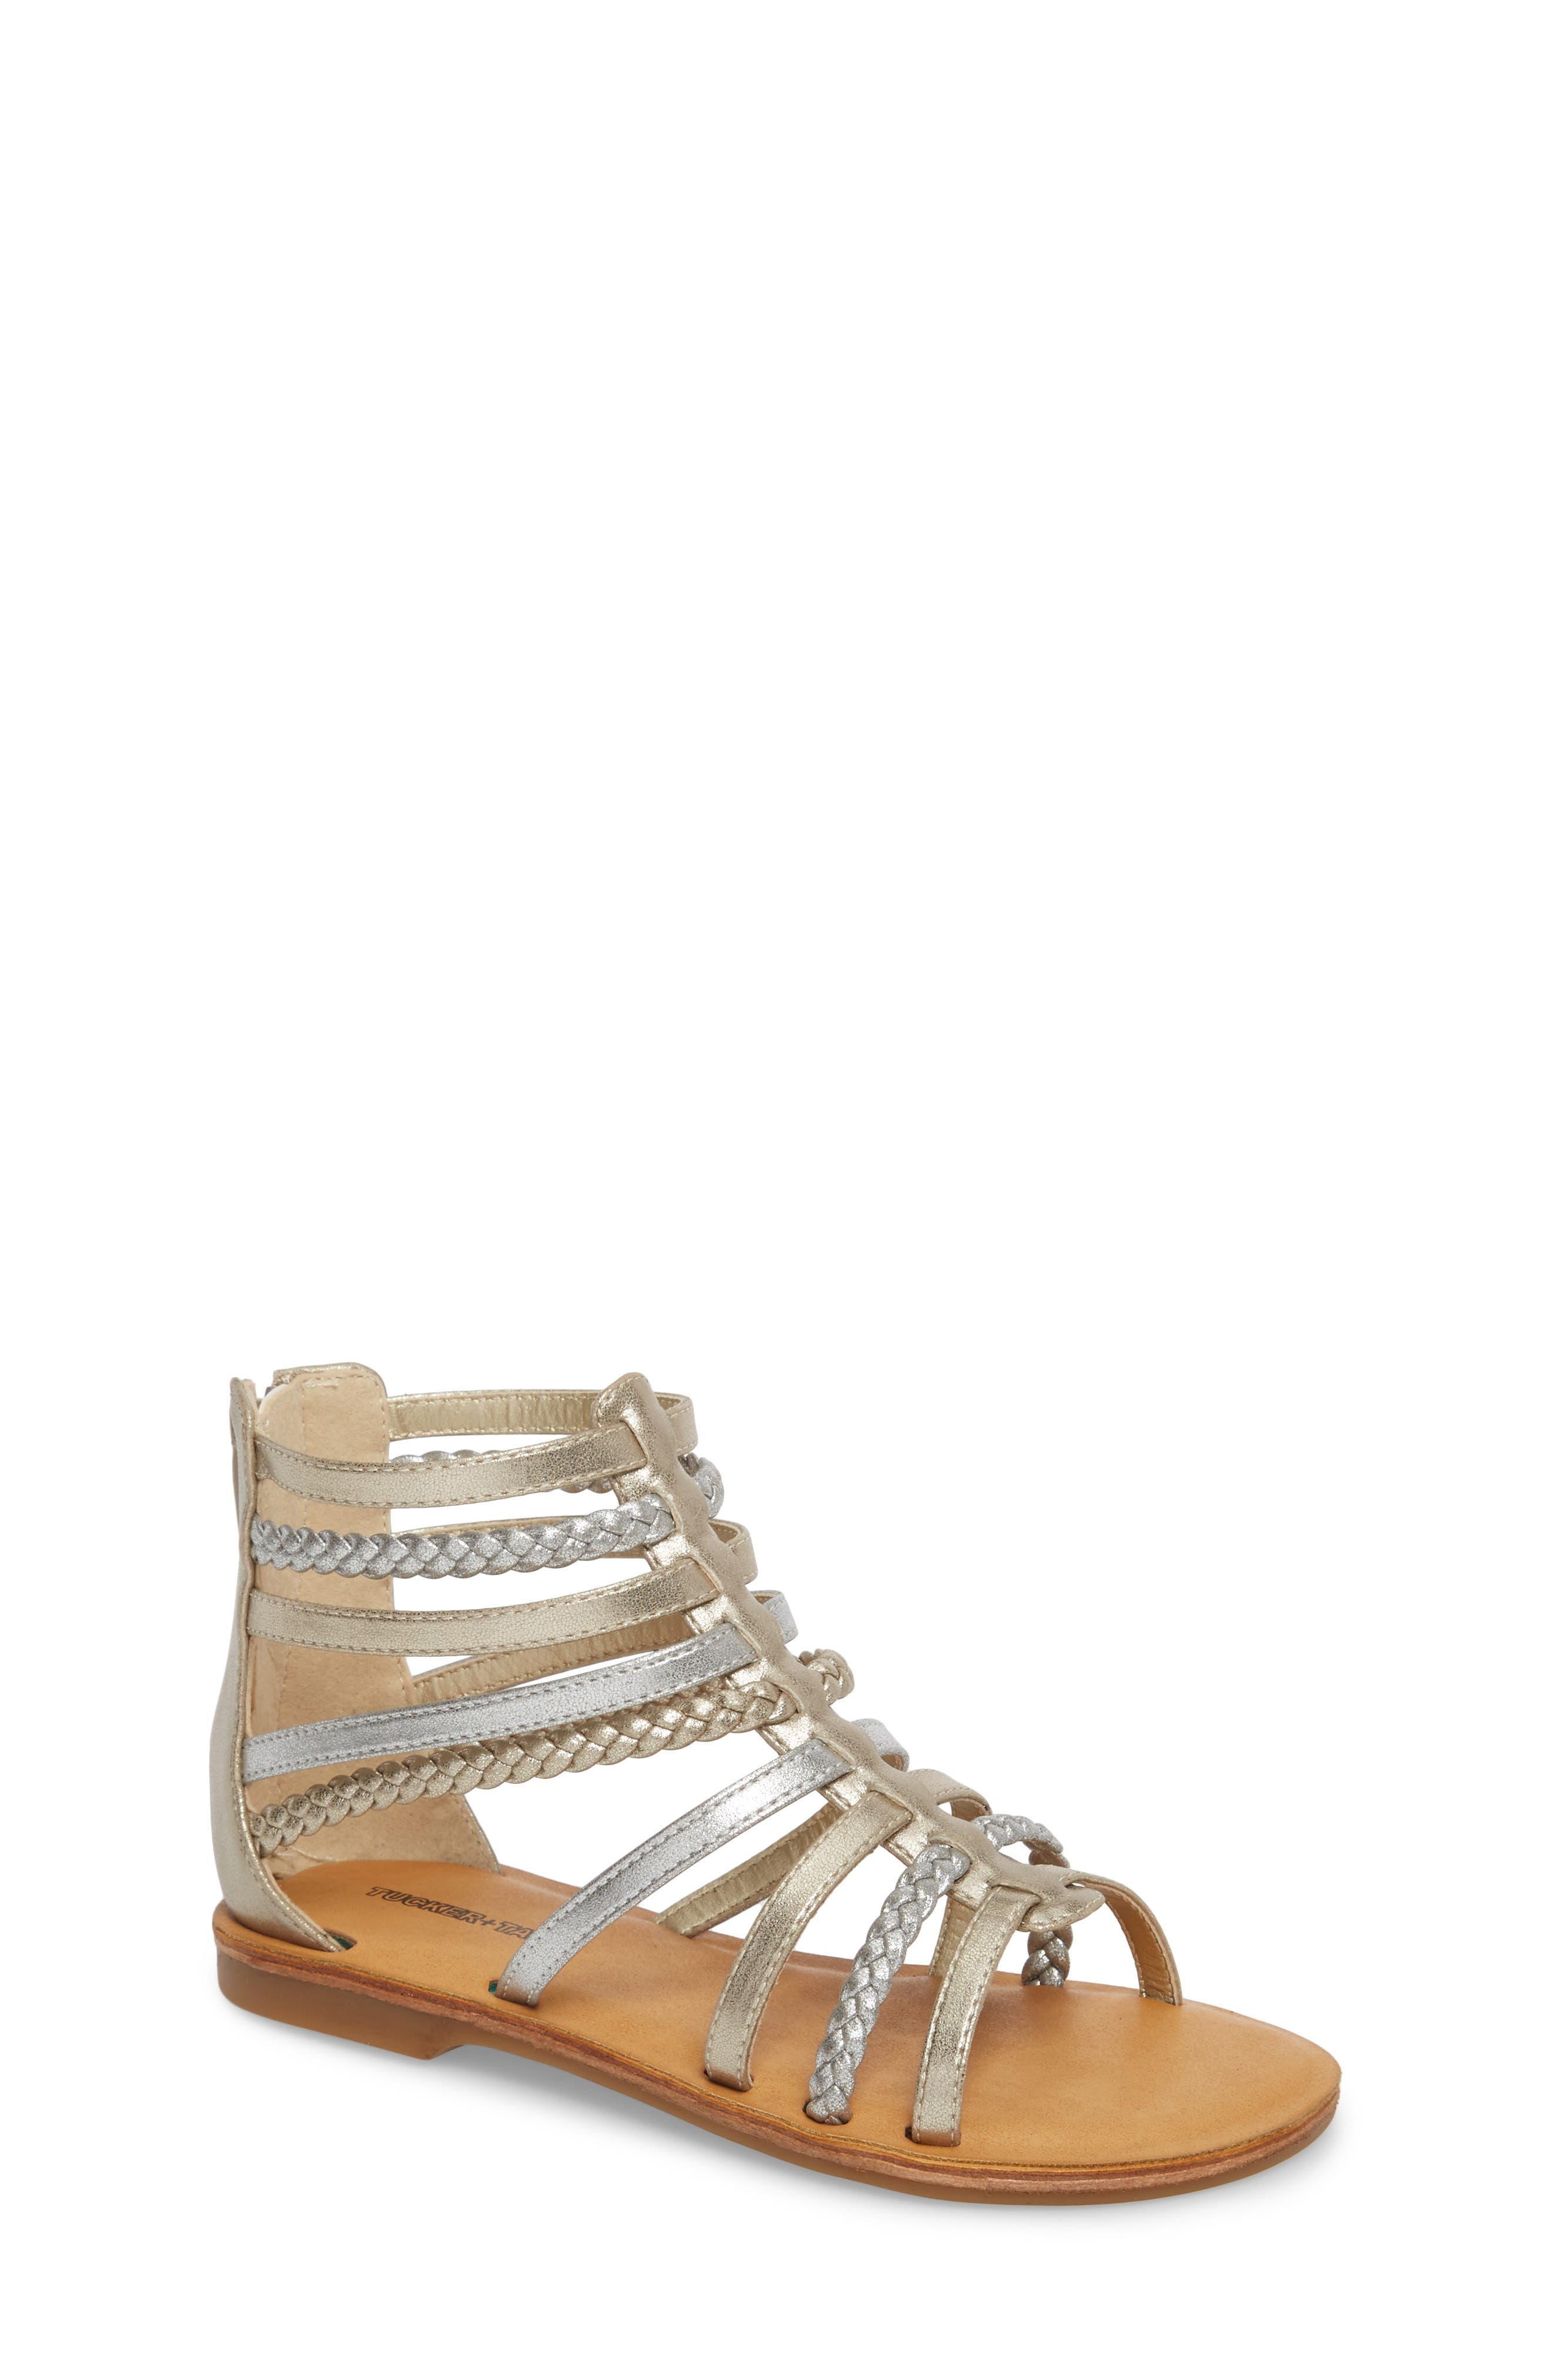 Sonja Braided Gladiator Sandal,                         Main,                         color, Silver/ Gold Faux Leather